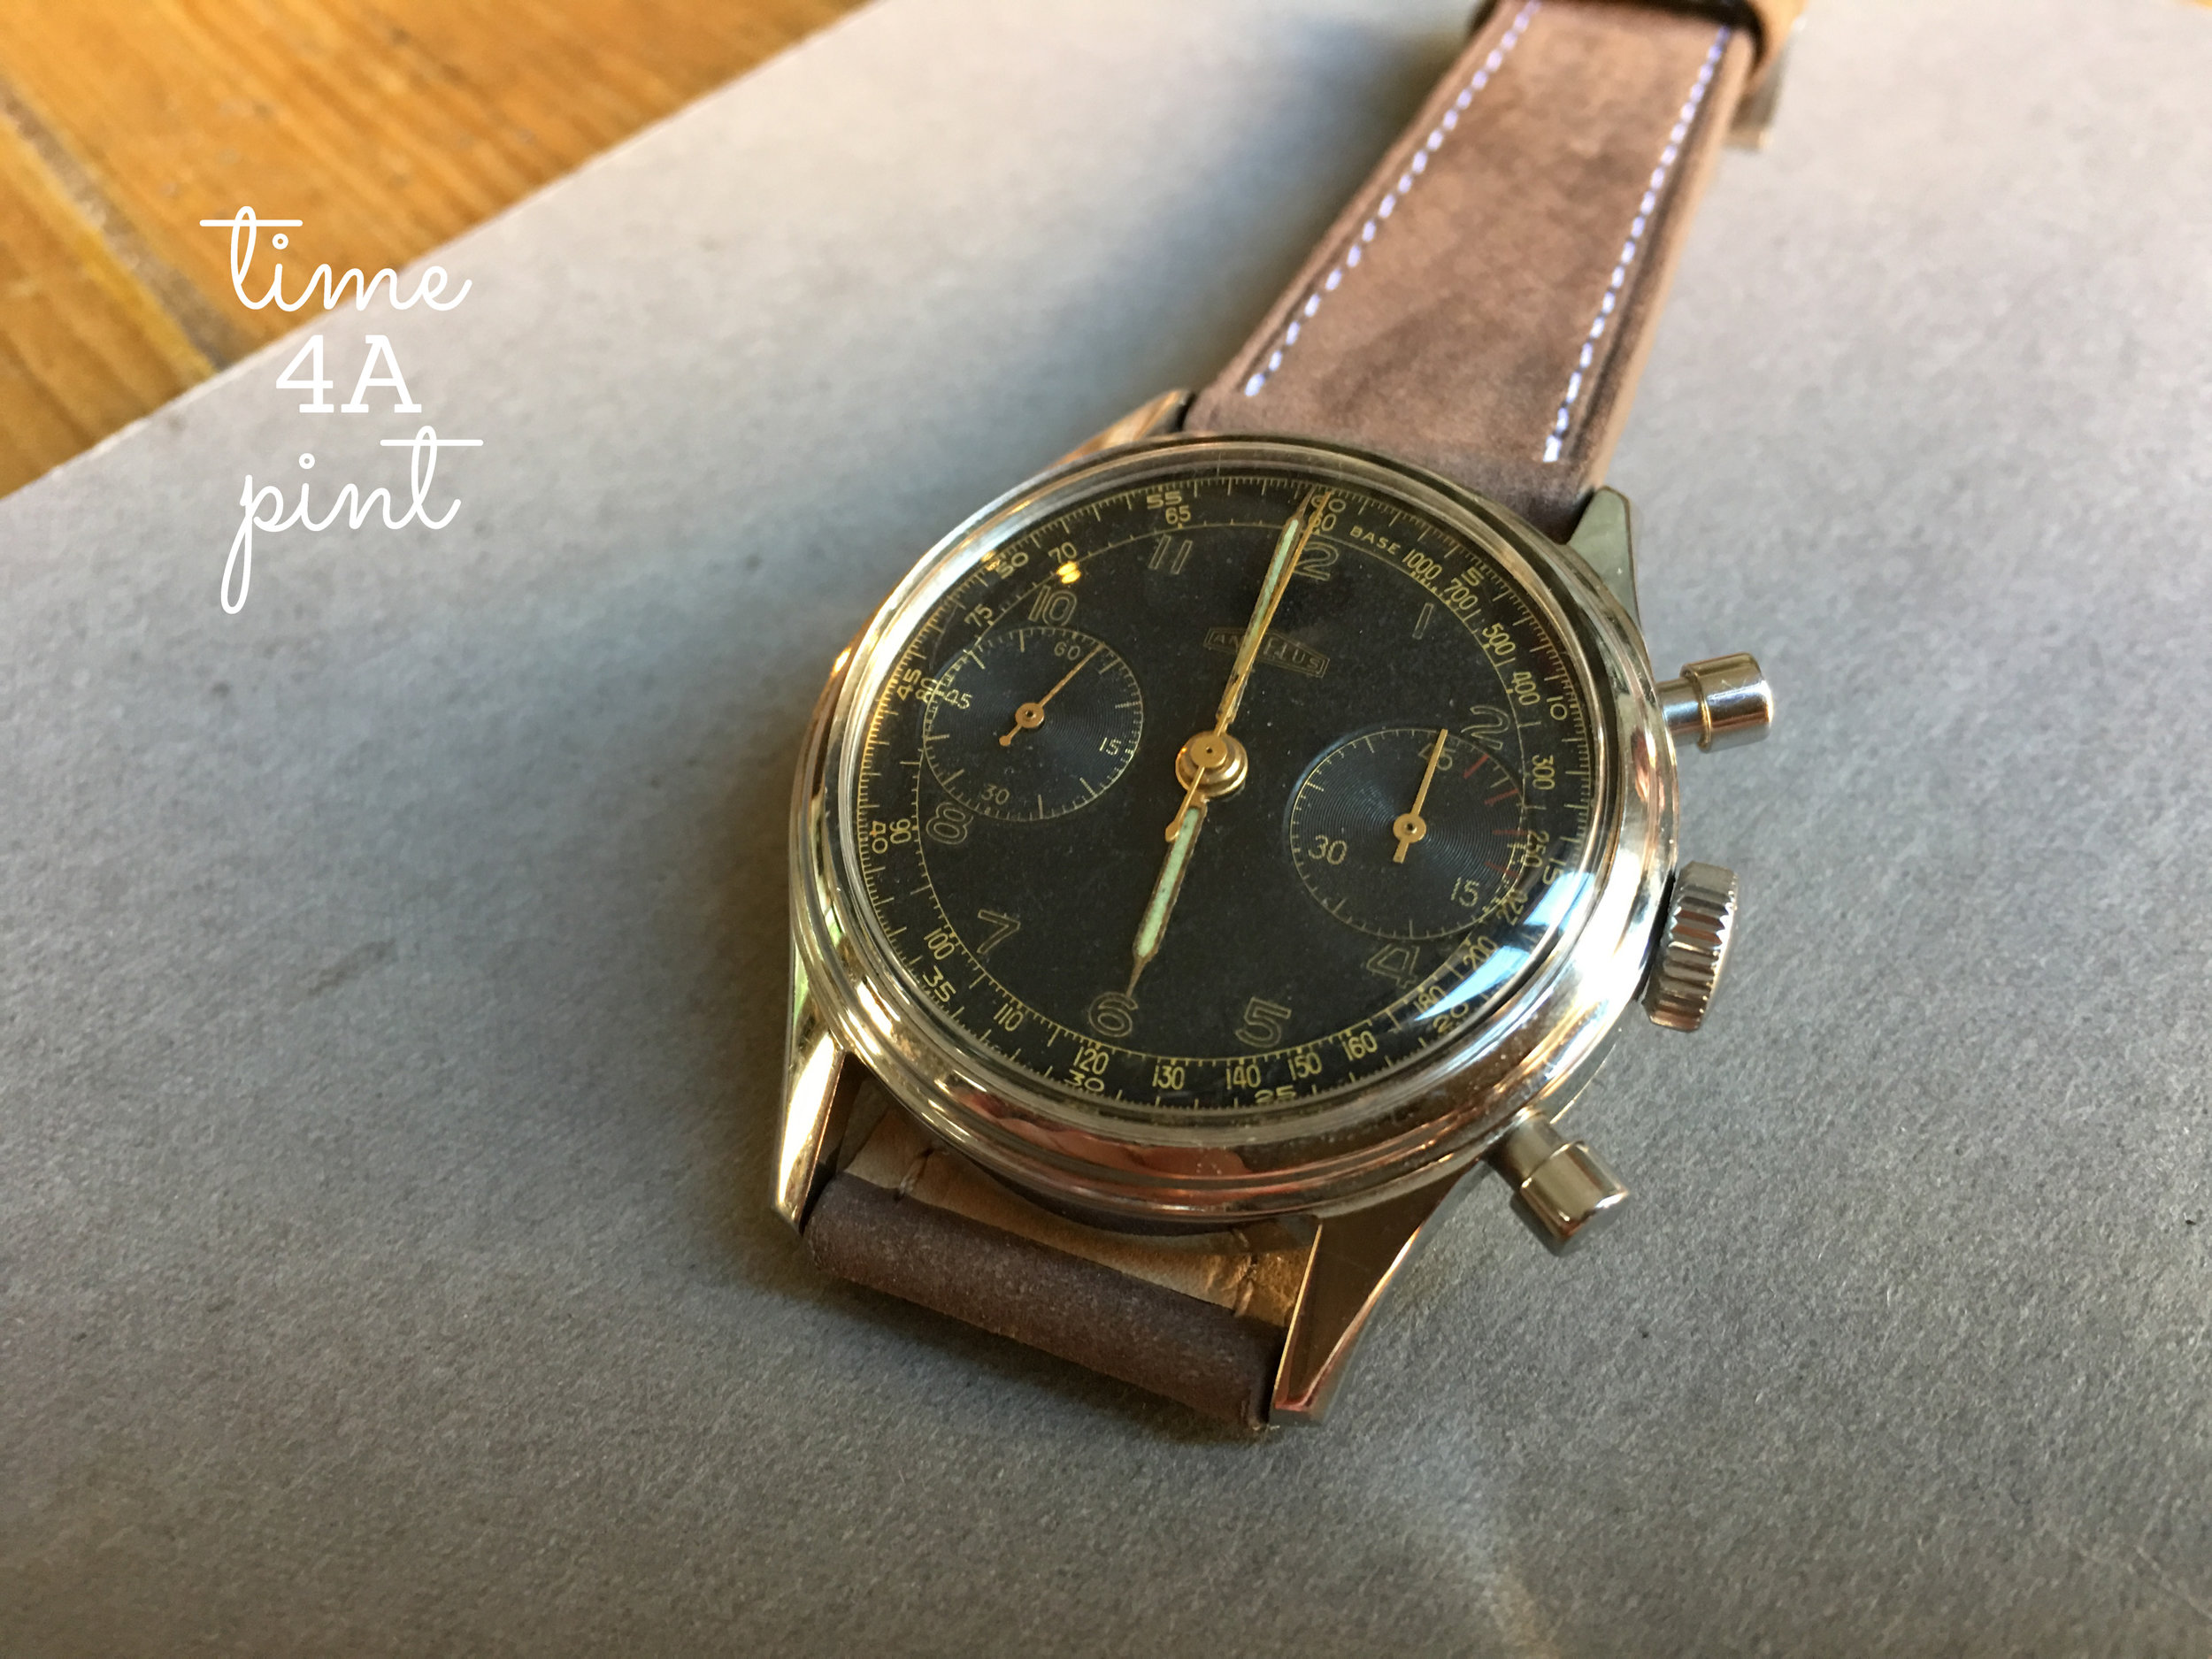 Hungarian Airforce Issued Angelus 215 Chronograph